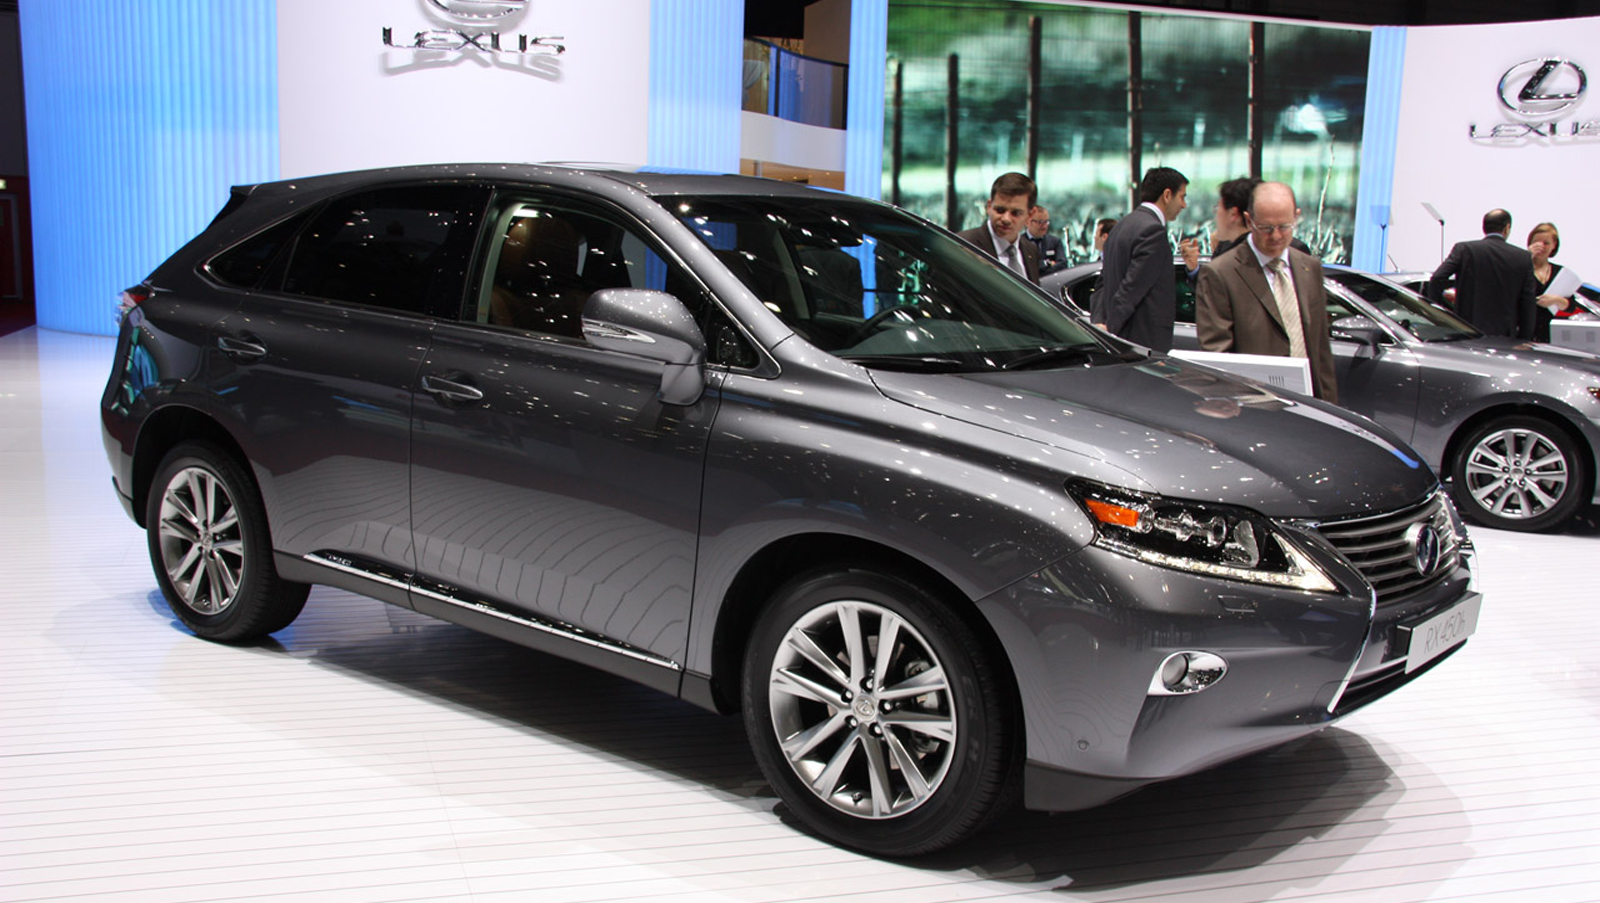 2014 lexus rx 450h image 15. Black Bedroom Furniture Sets. Home Design Ideas